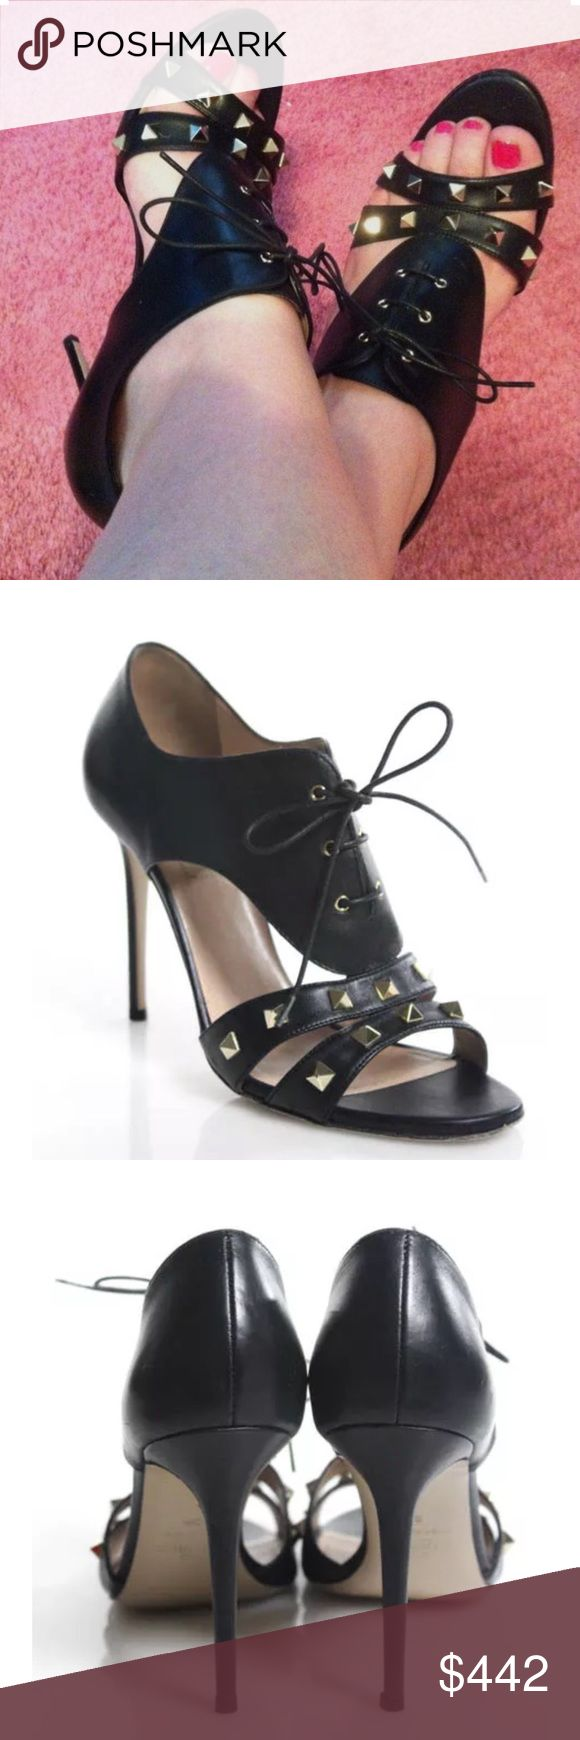 Valentino Rockstud lace up cutout sandal booties 9 100% authentic! Valentino Rockstud lace up cutout leather sandal booties, size 39.  Open toe.  There is wear on the soles, and slight wear to the insoles.  The leather is in fantastic condition, and all the studs are intact.  Overall, very good condition!  Comes with original box.  Retail $895.  The model photo is for fit and style reference only. She is wearing the same style shoe that I have for sale, but in the leopard print version…